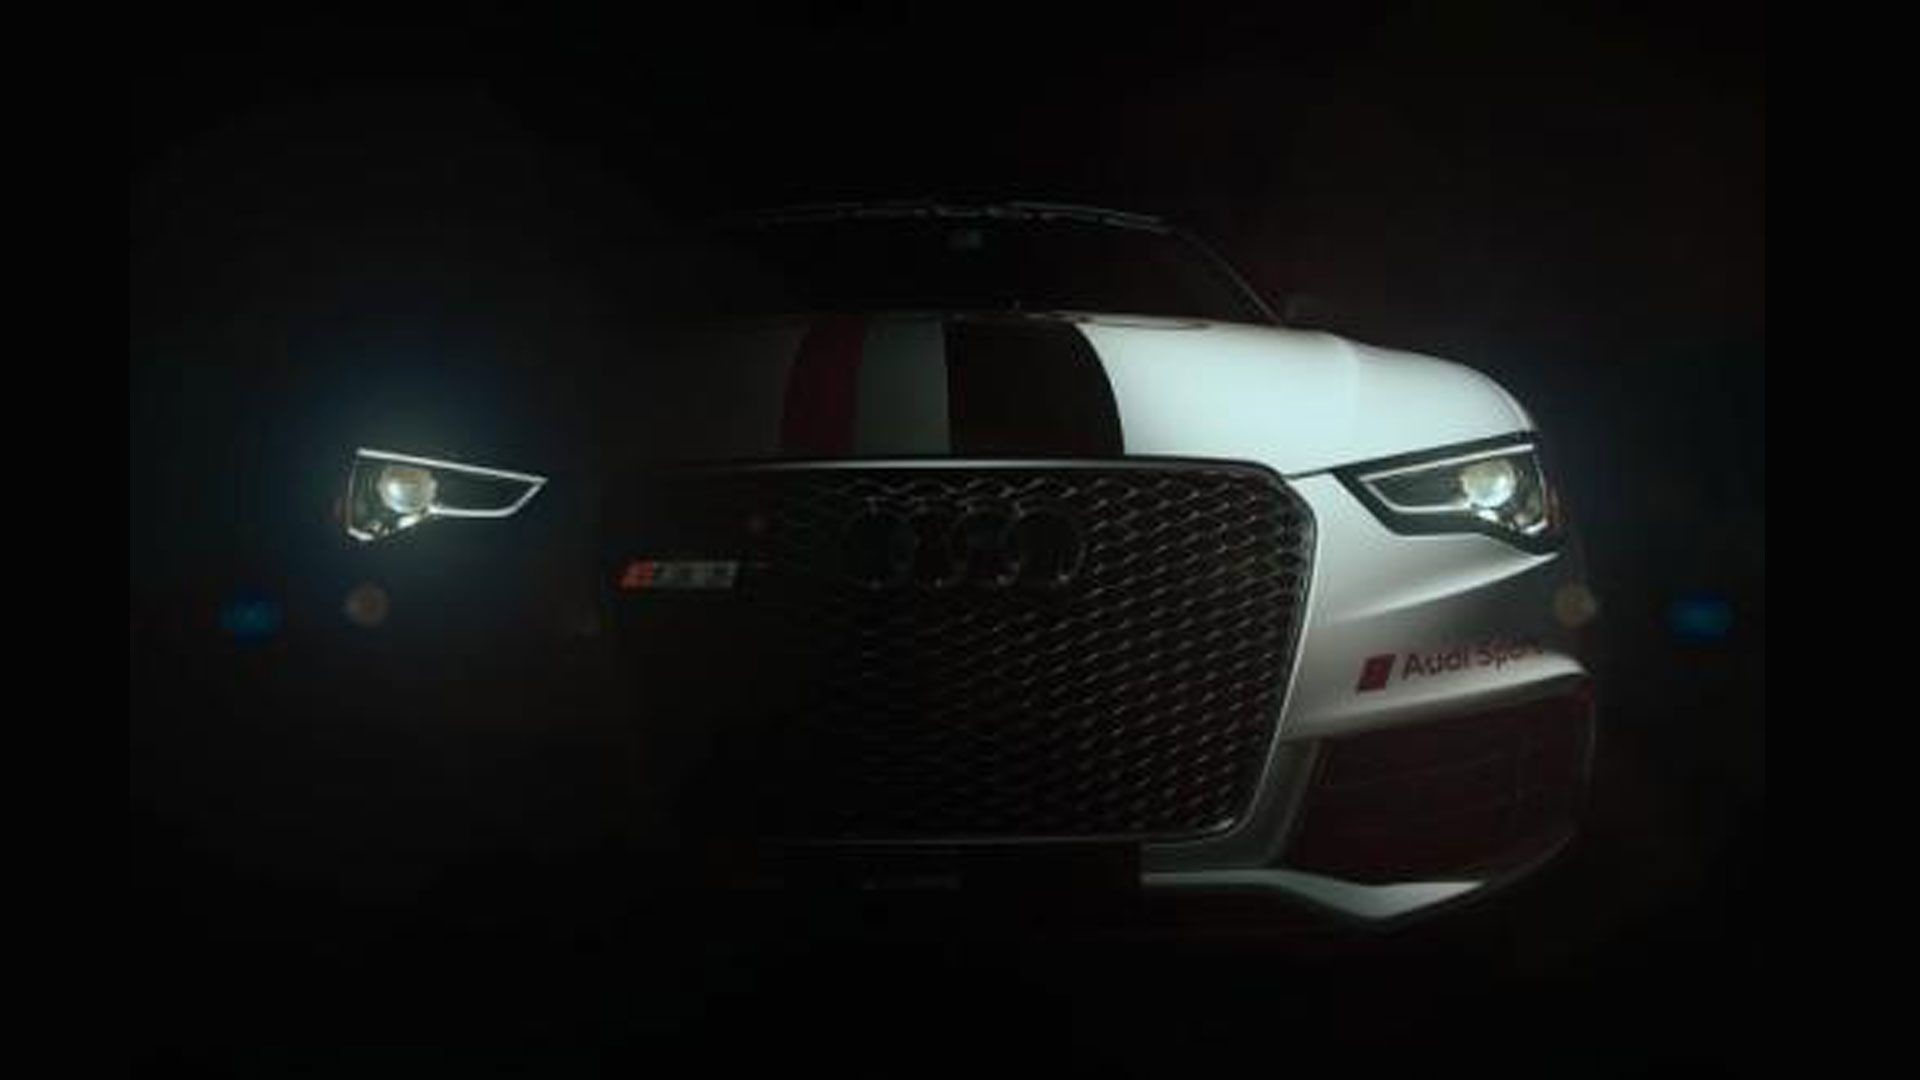 Res: 1920x1080, Audi S5 Wallpaper High Quality Resolution